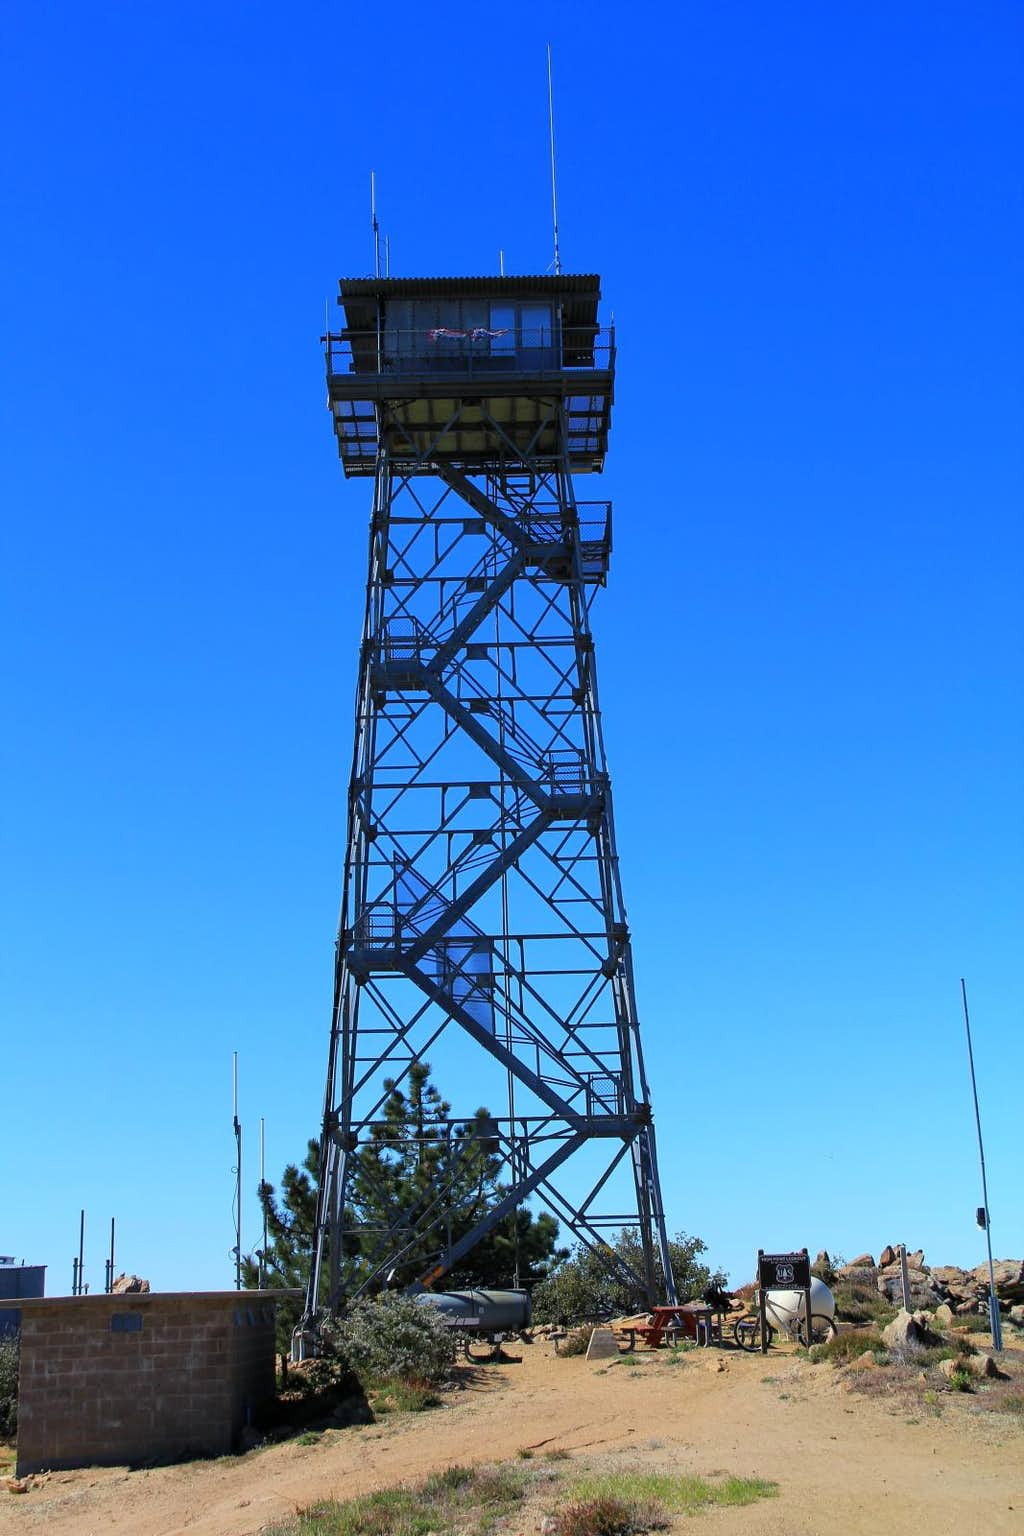 Lookout tower at the palomar mountain highpoint photos for Lookout tower plans